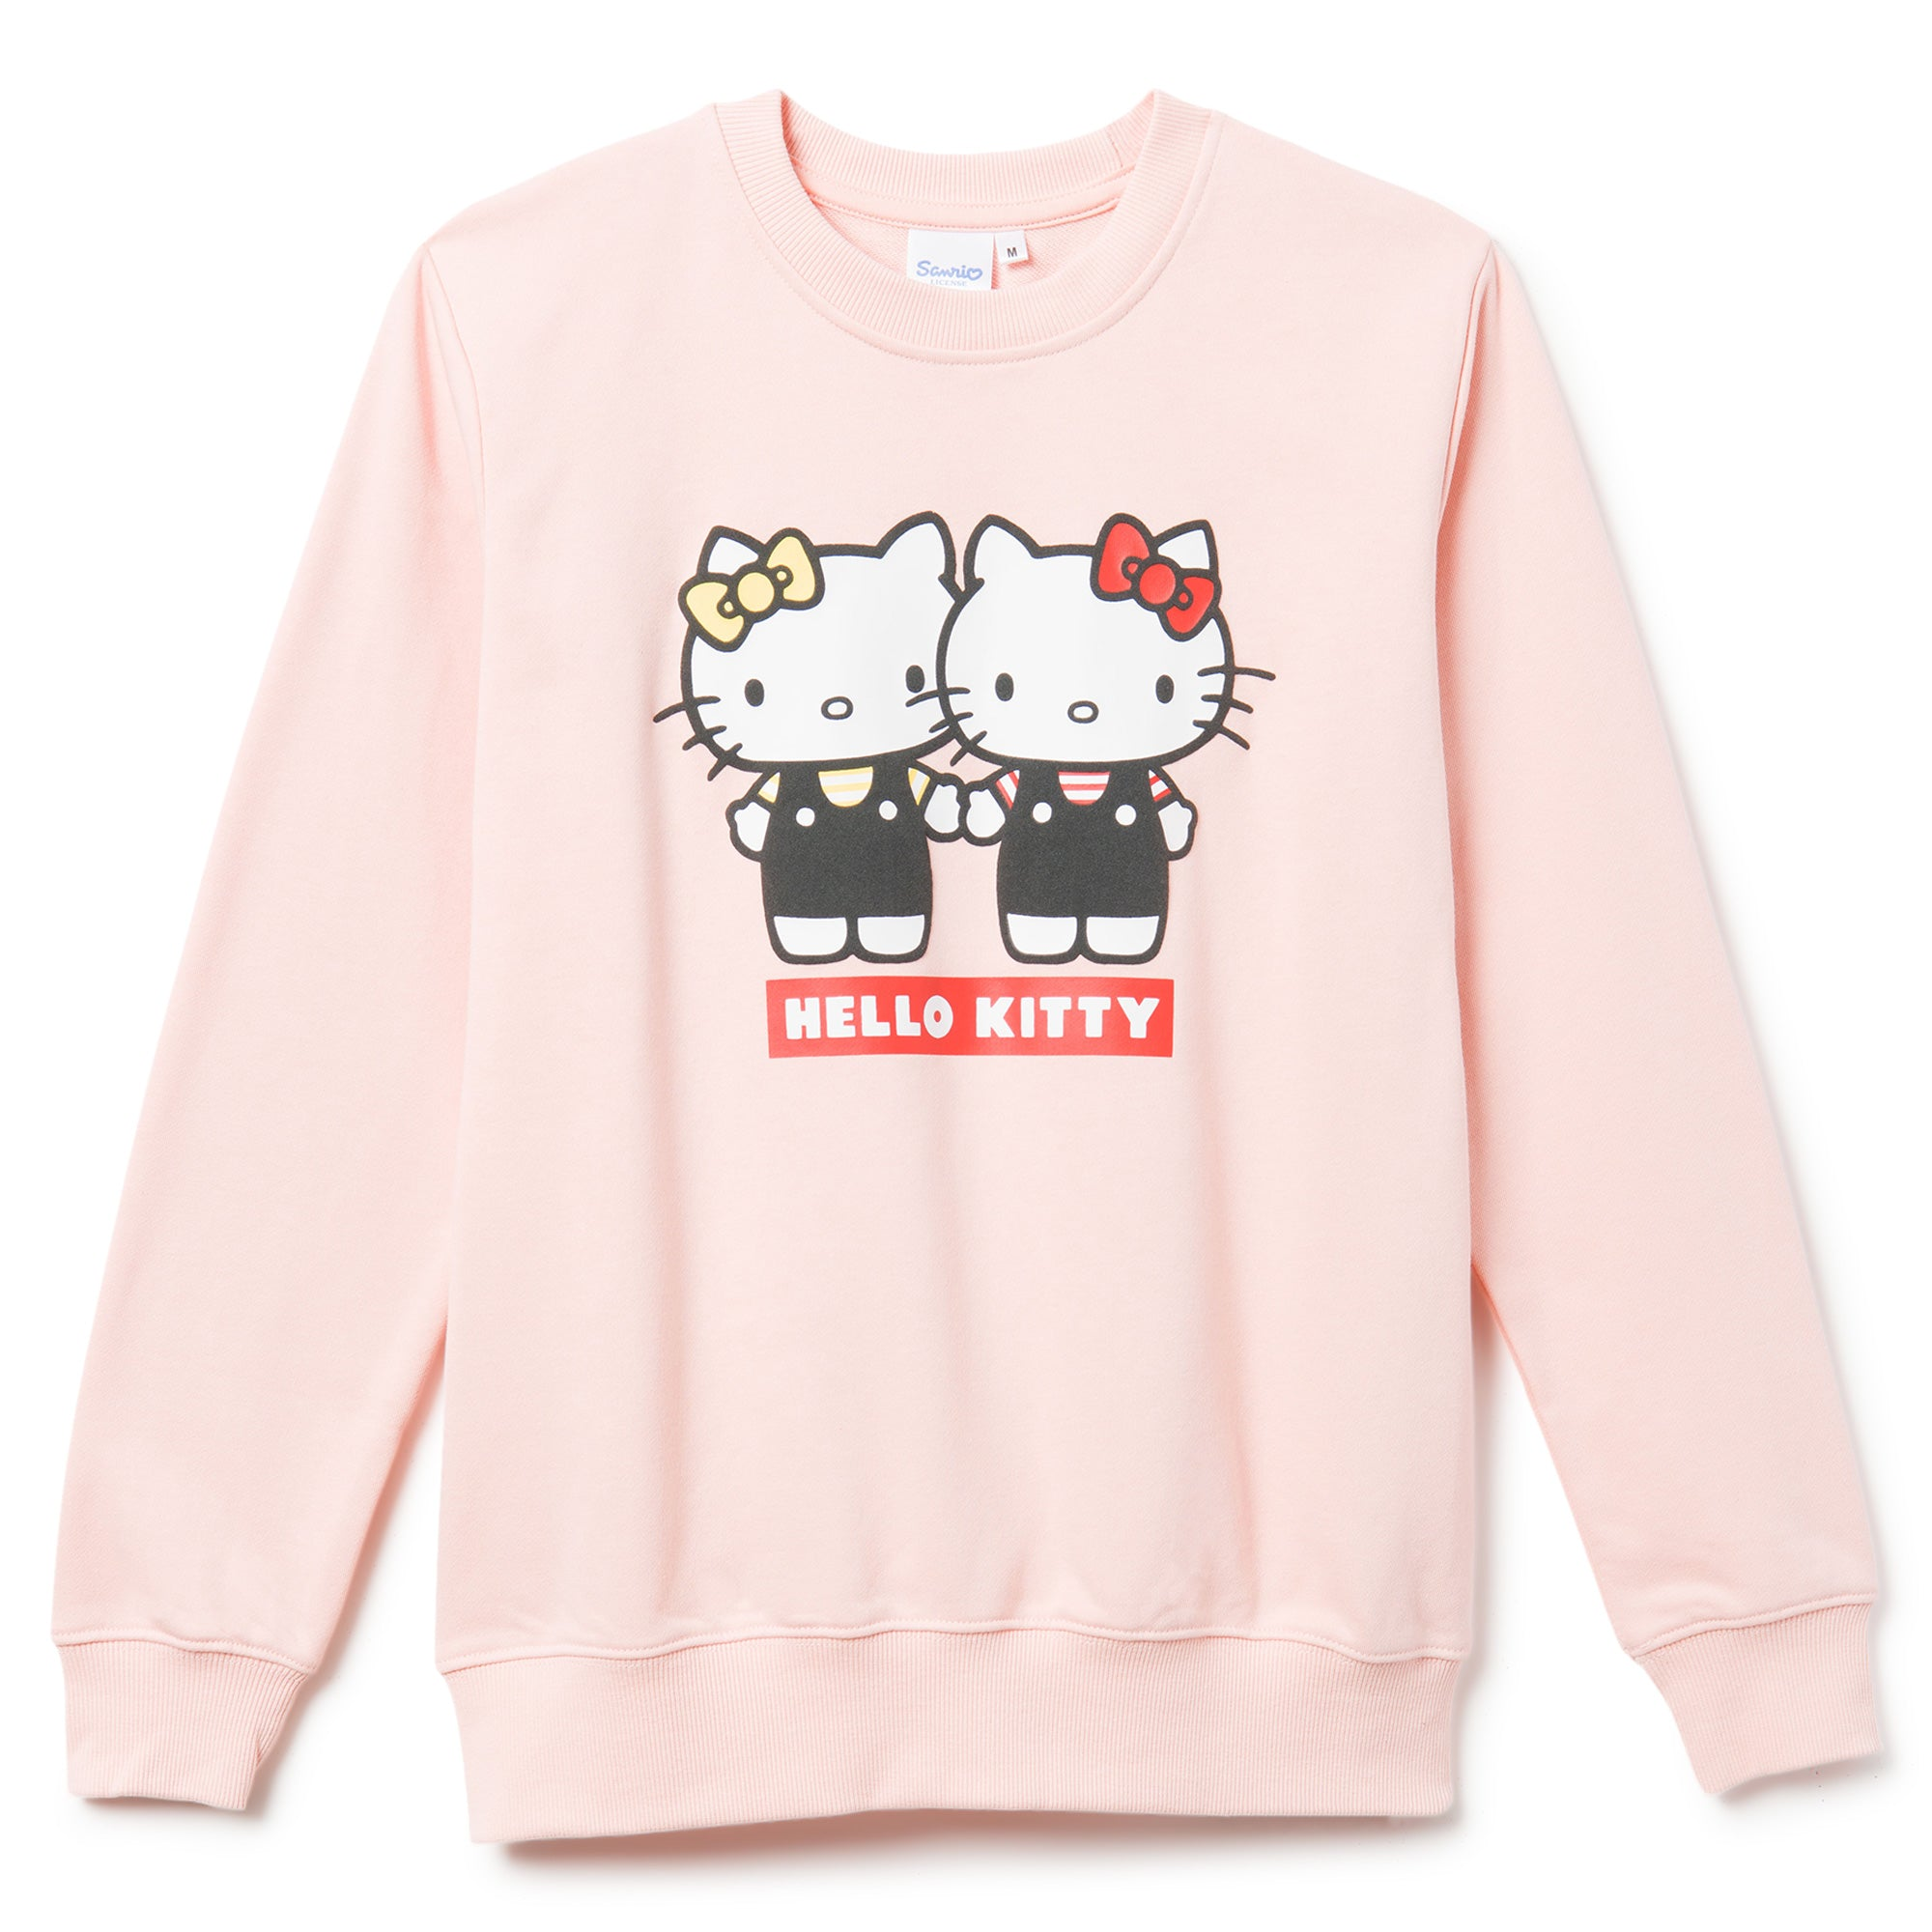 Hello Kitty & Mimmy Print Sweatshirt Pink